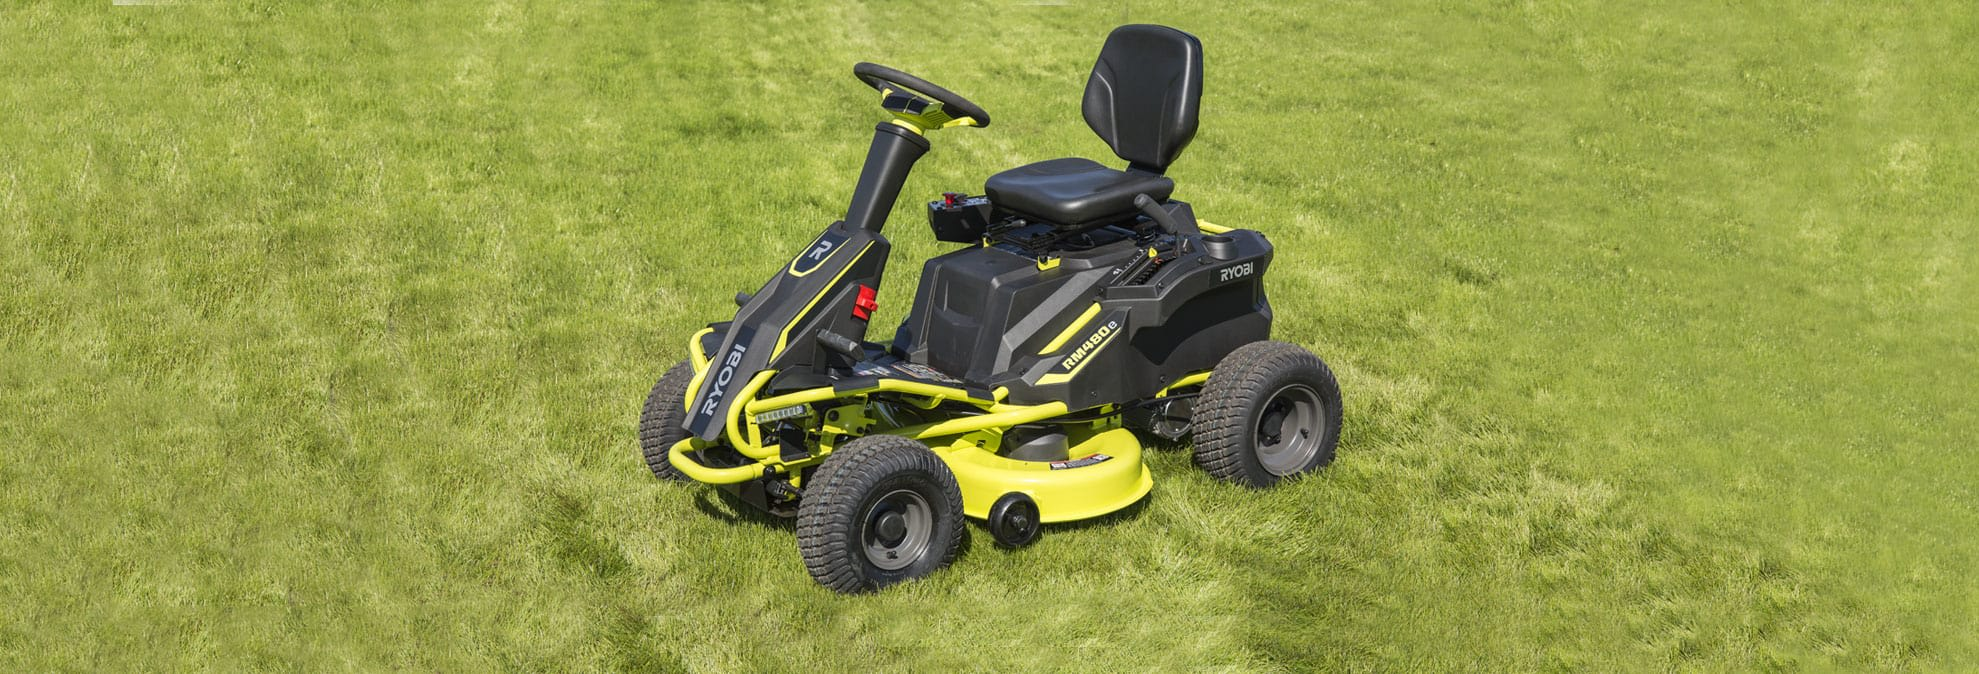 ryobi r48110 electric riding lawn mower review - consumer